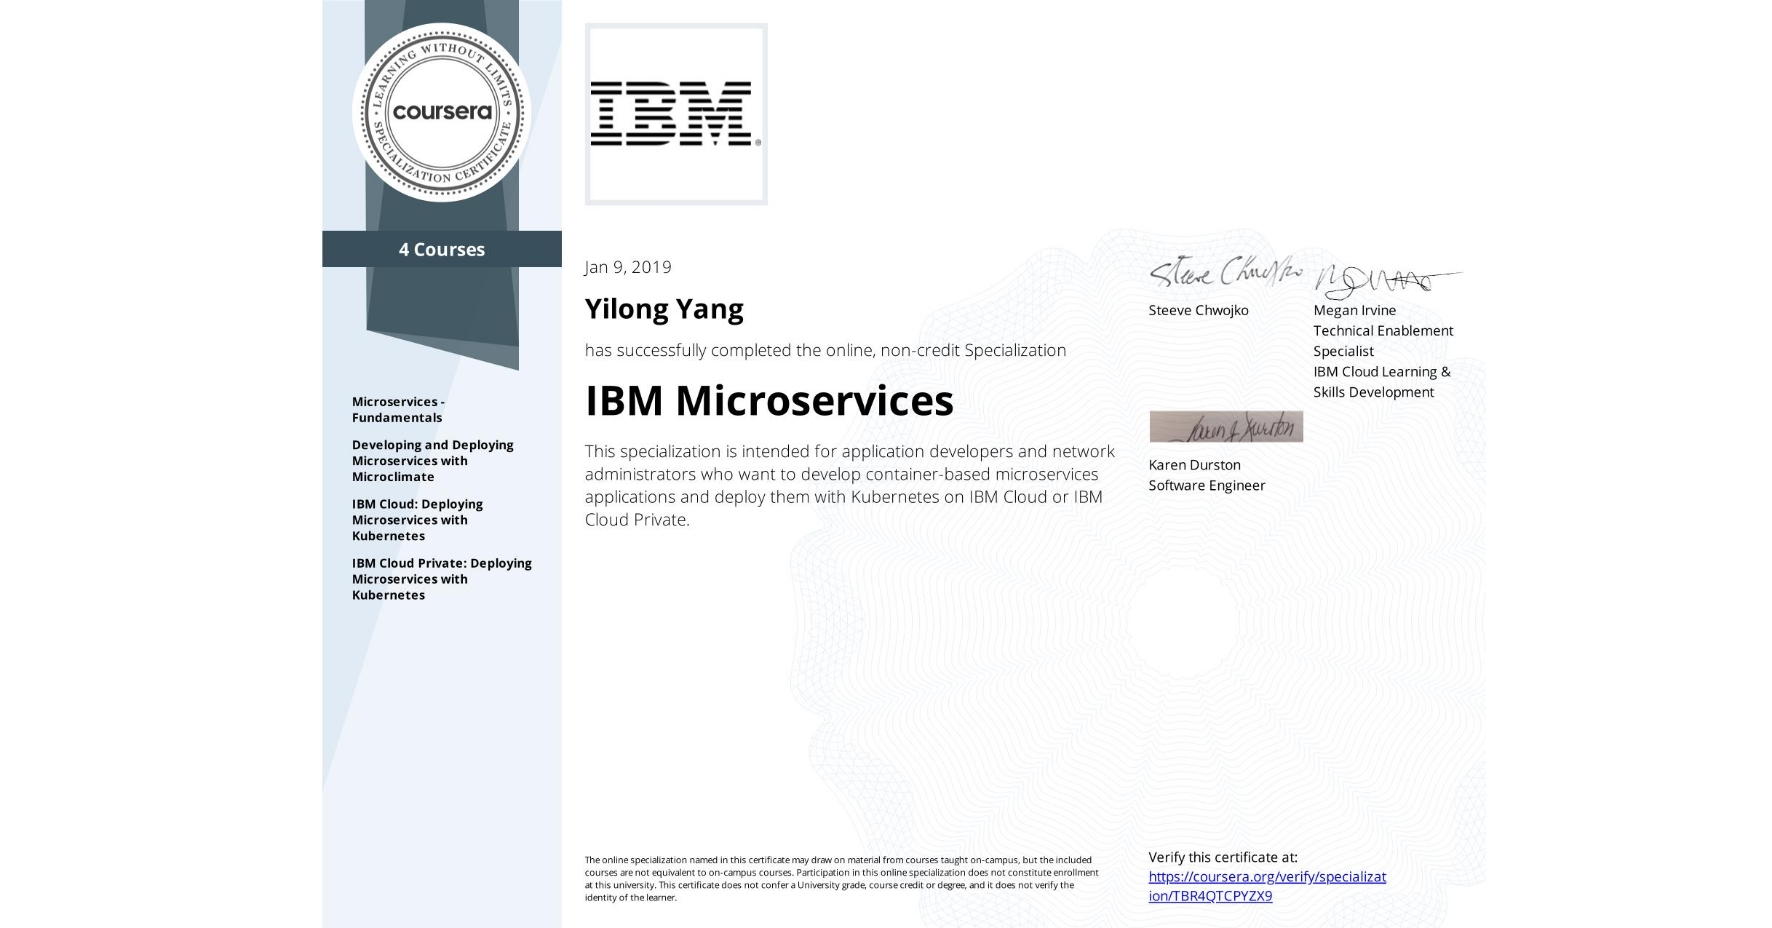 View certificate for Yilong Yang, IBM Microservices, offered through Coursera. This specialization is intended for application developers and network administrators who want to develop container-based microservices applications and deploy them with Kubernetes on IBM Cloud or IBM Cloud Private.